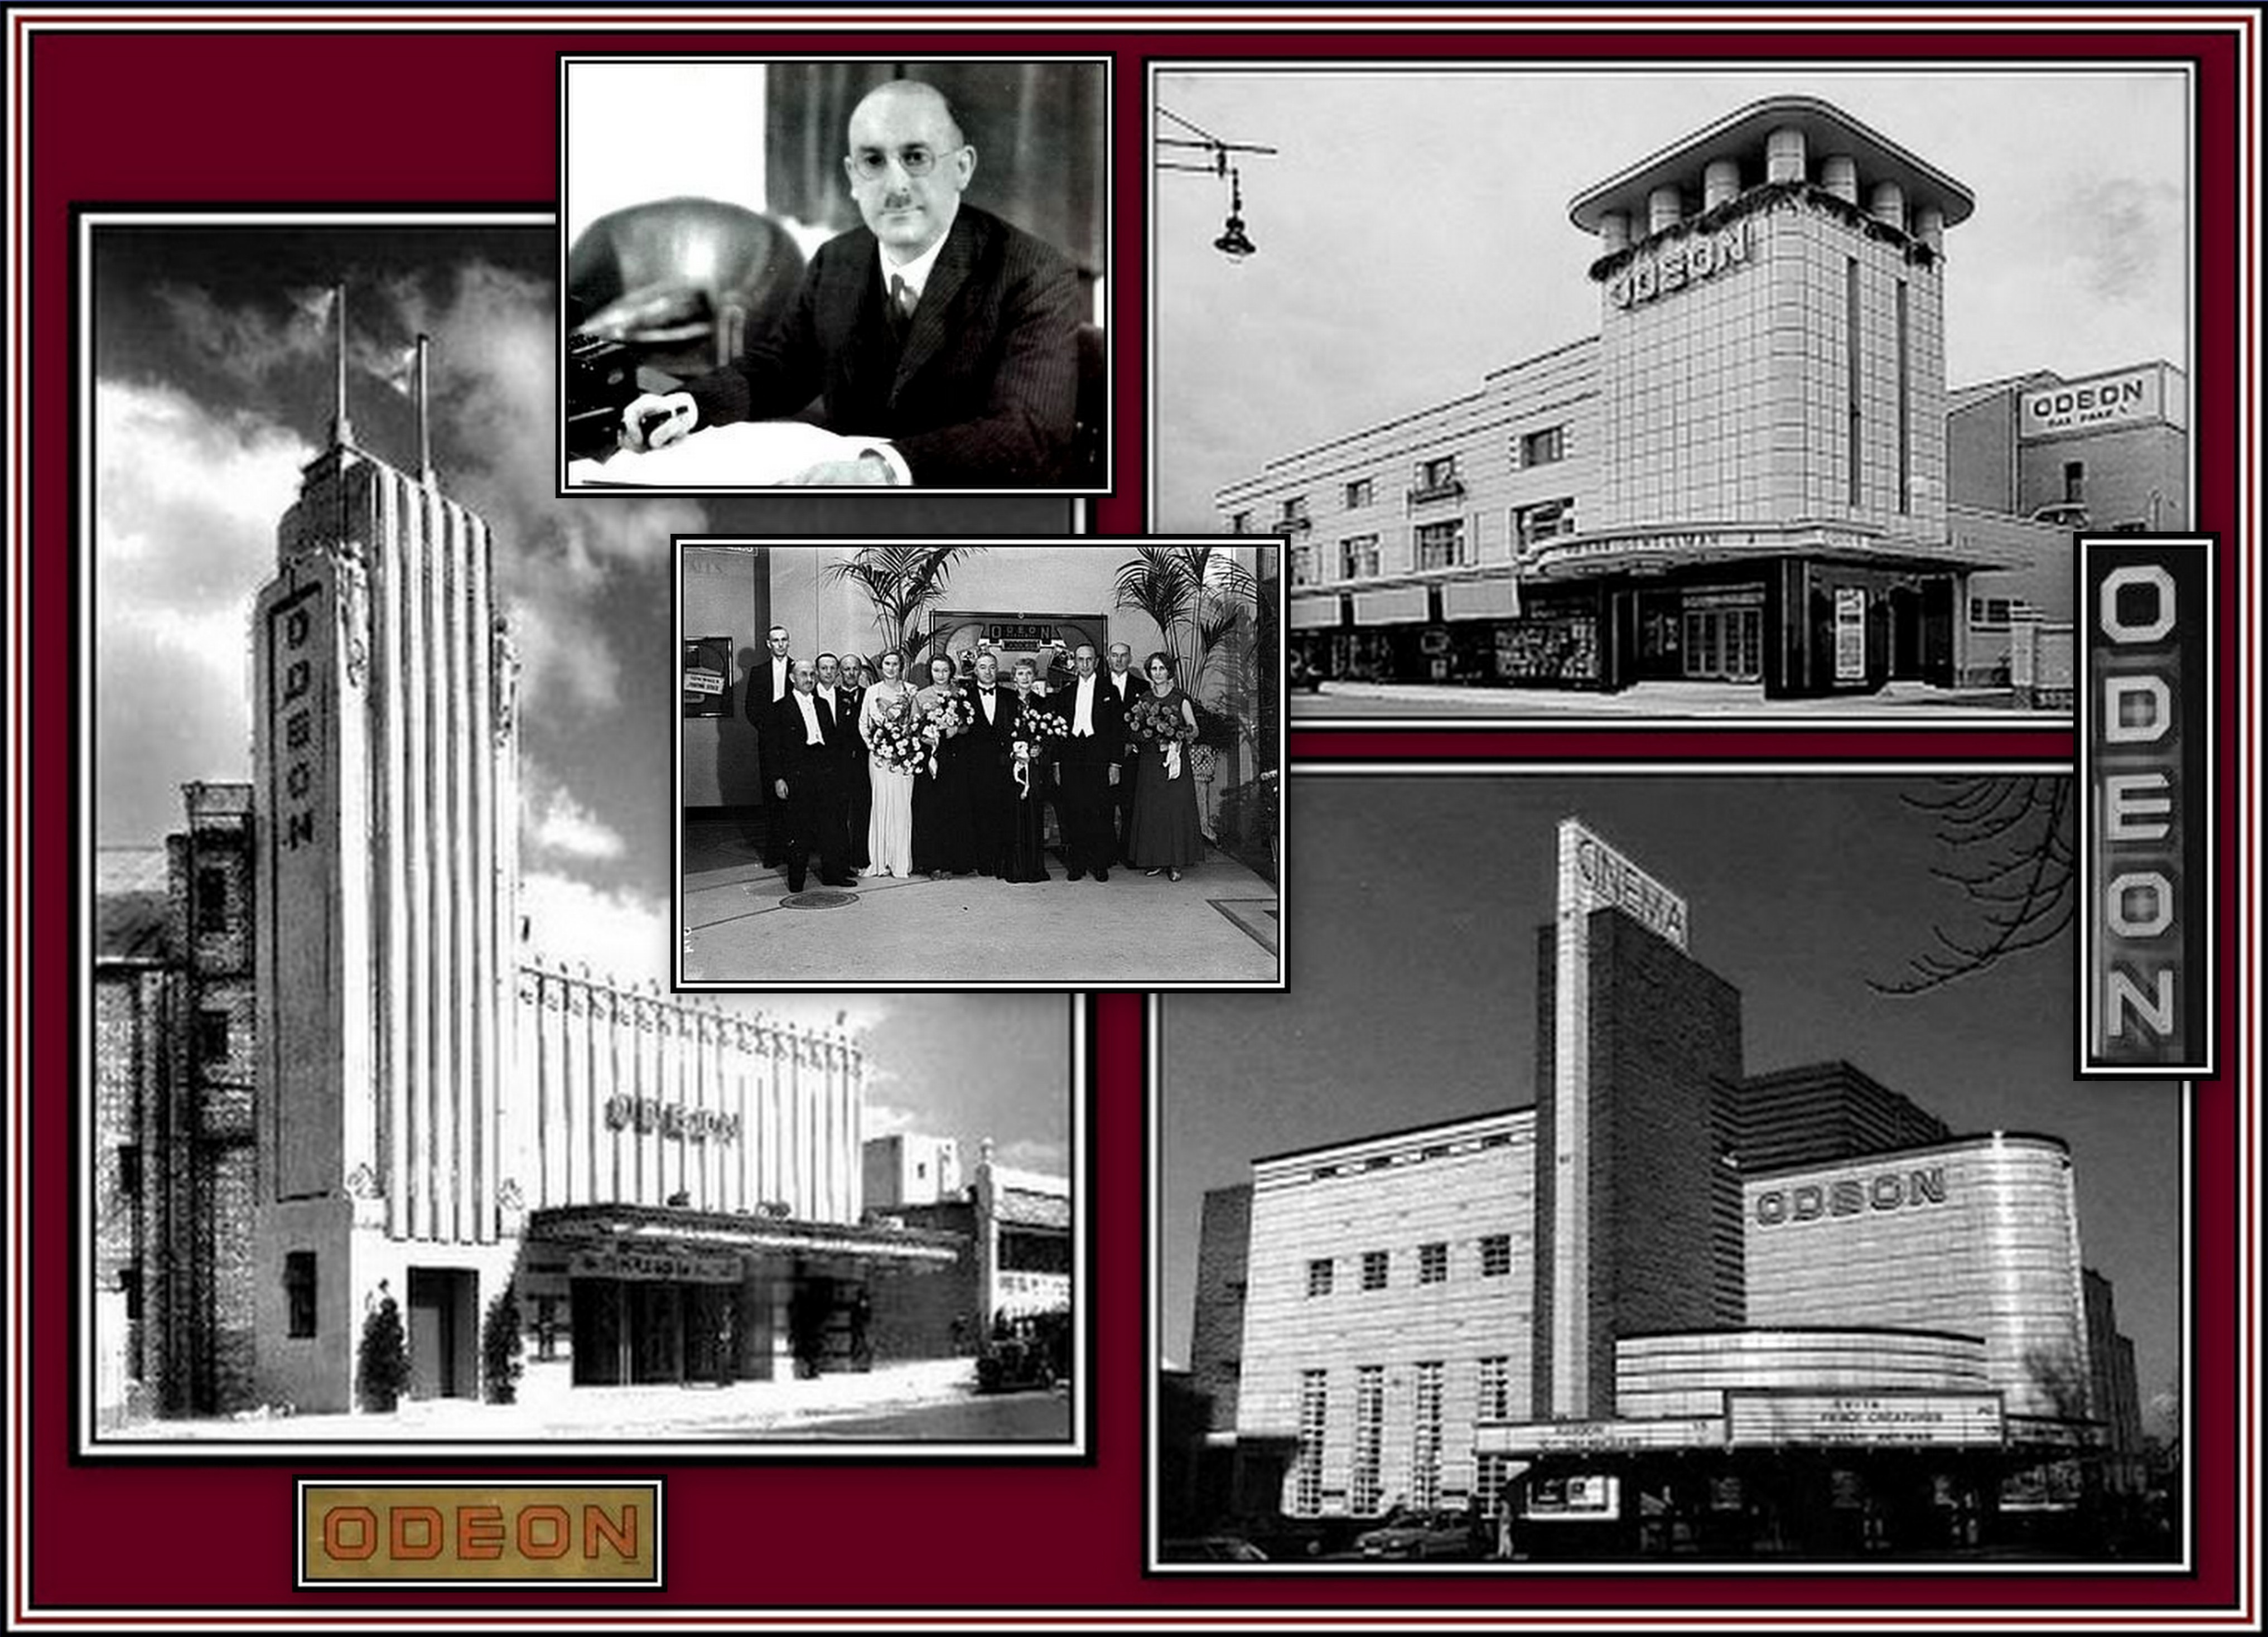 Odeon-Overlay-Collage